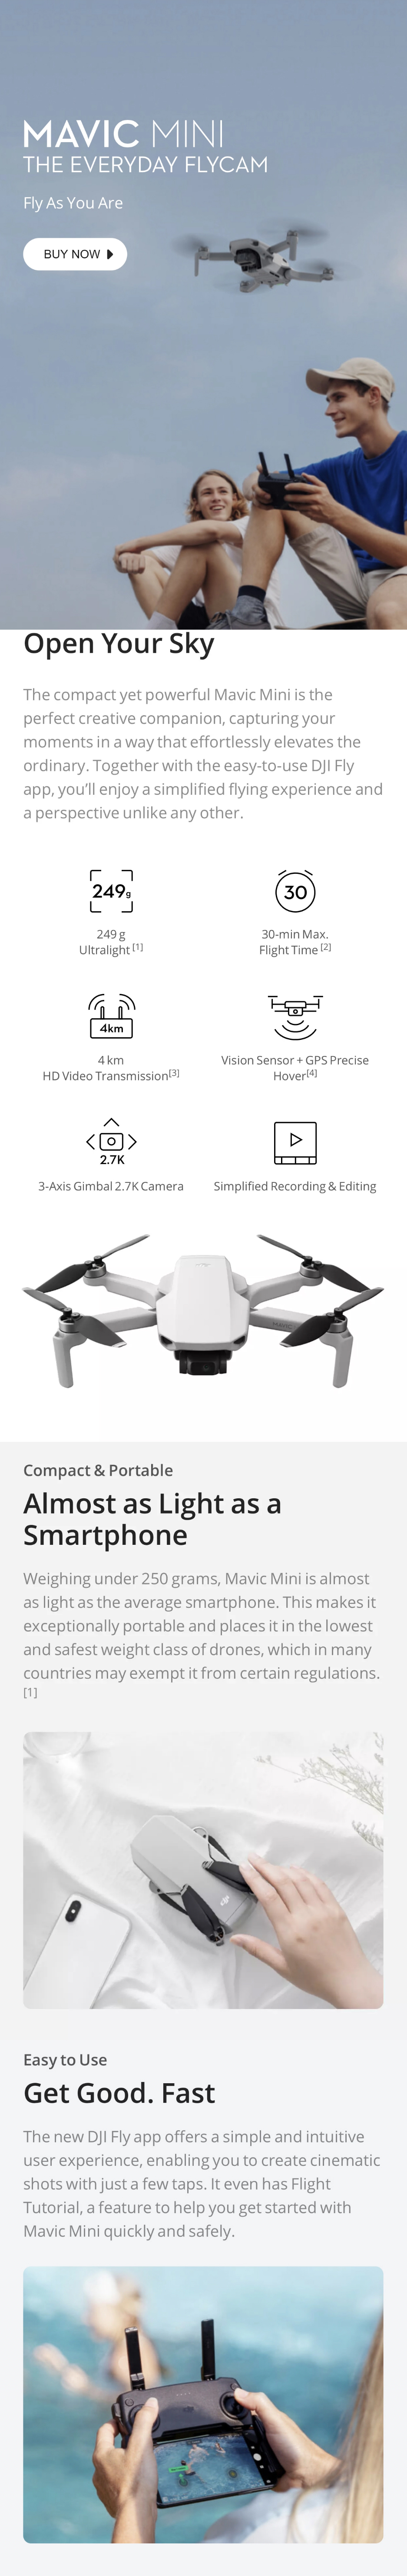 DJI Drone Mavic mini Fly daha Combo Ultralight ve katlanabilir mini drone